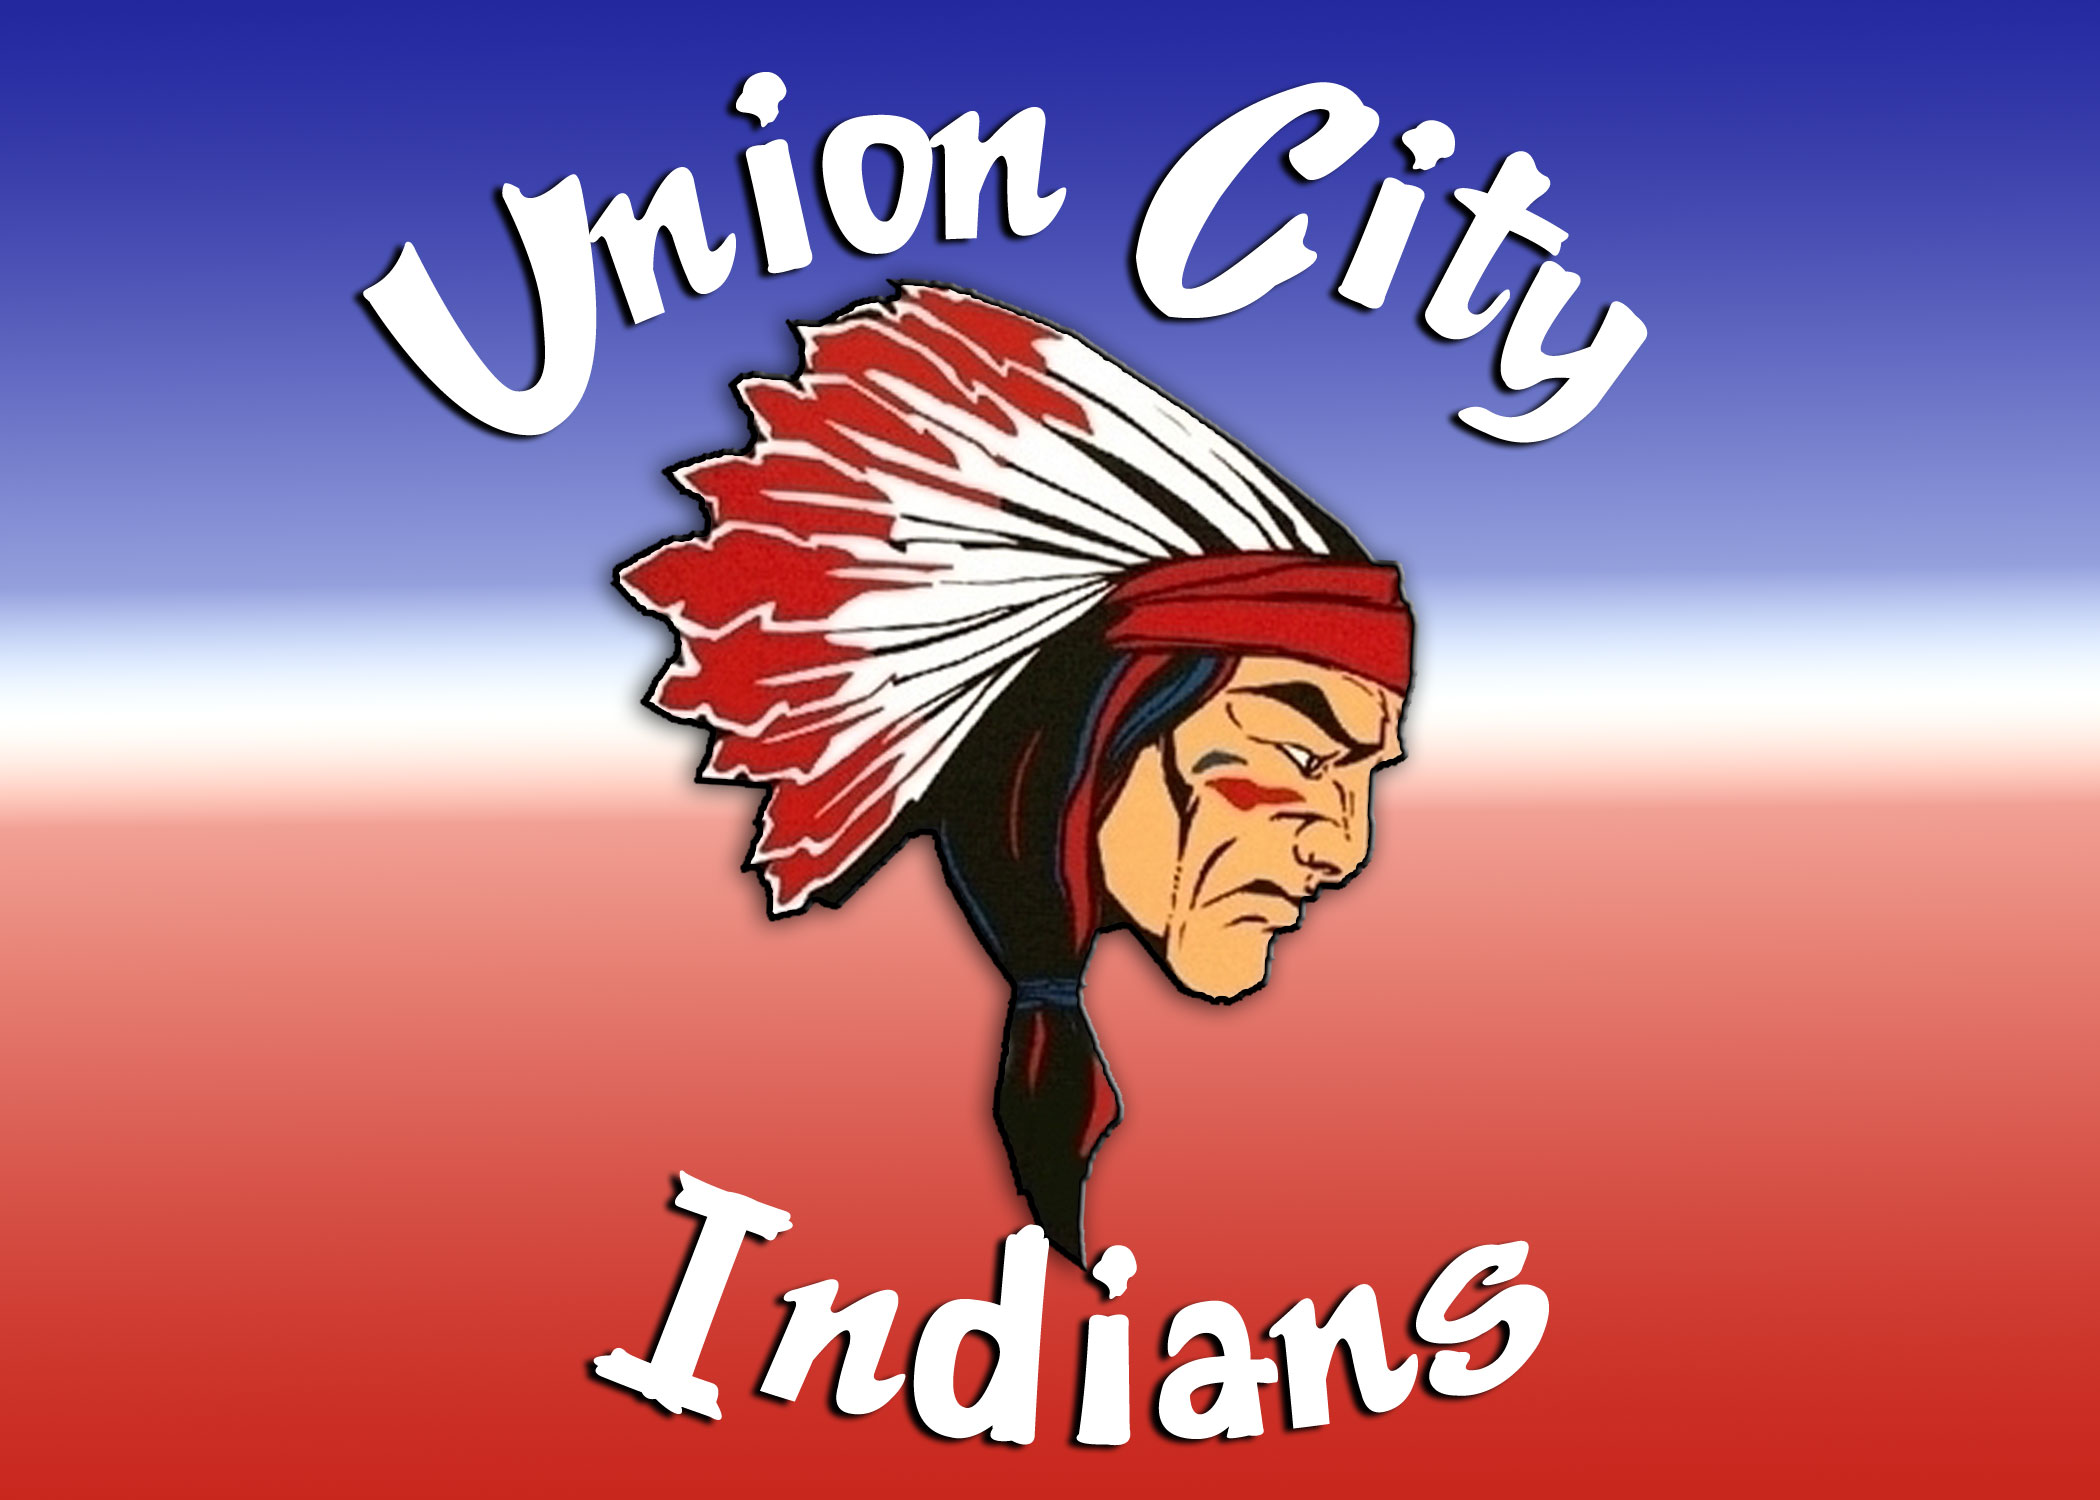 India Grappling With Selection Issues In Carlton Tri: Union City Girls Rally For TEC Victory